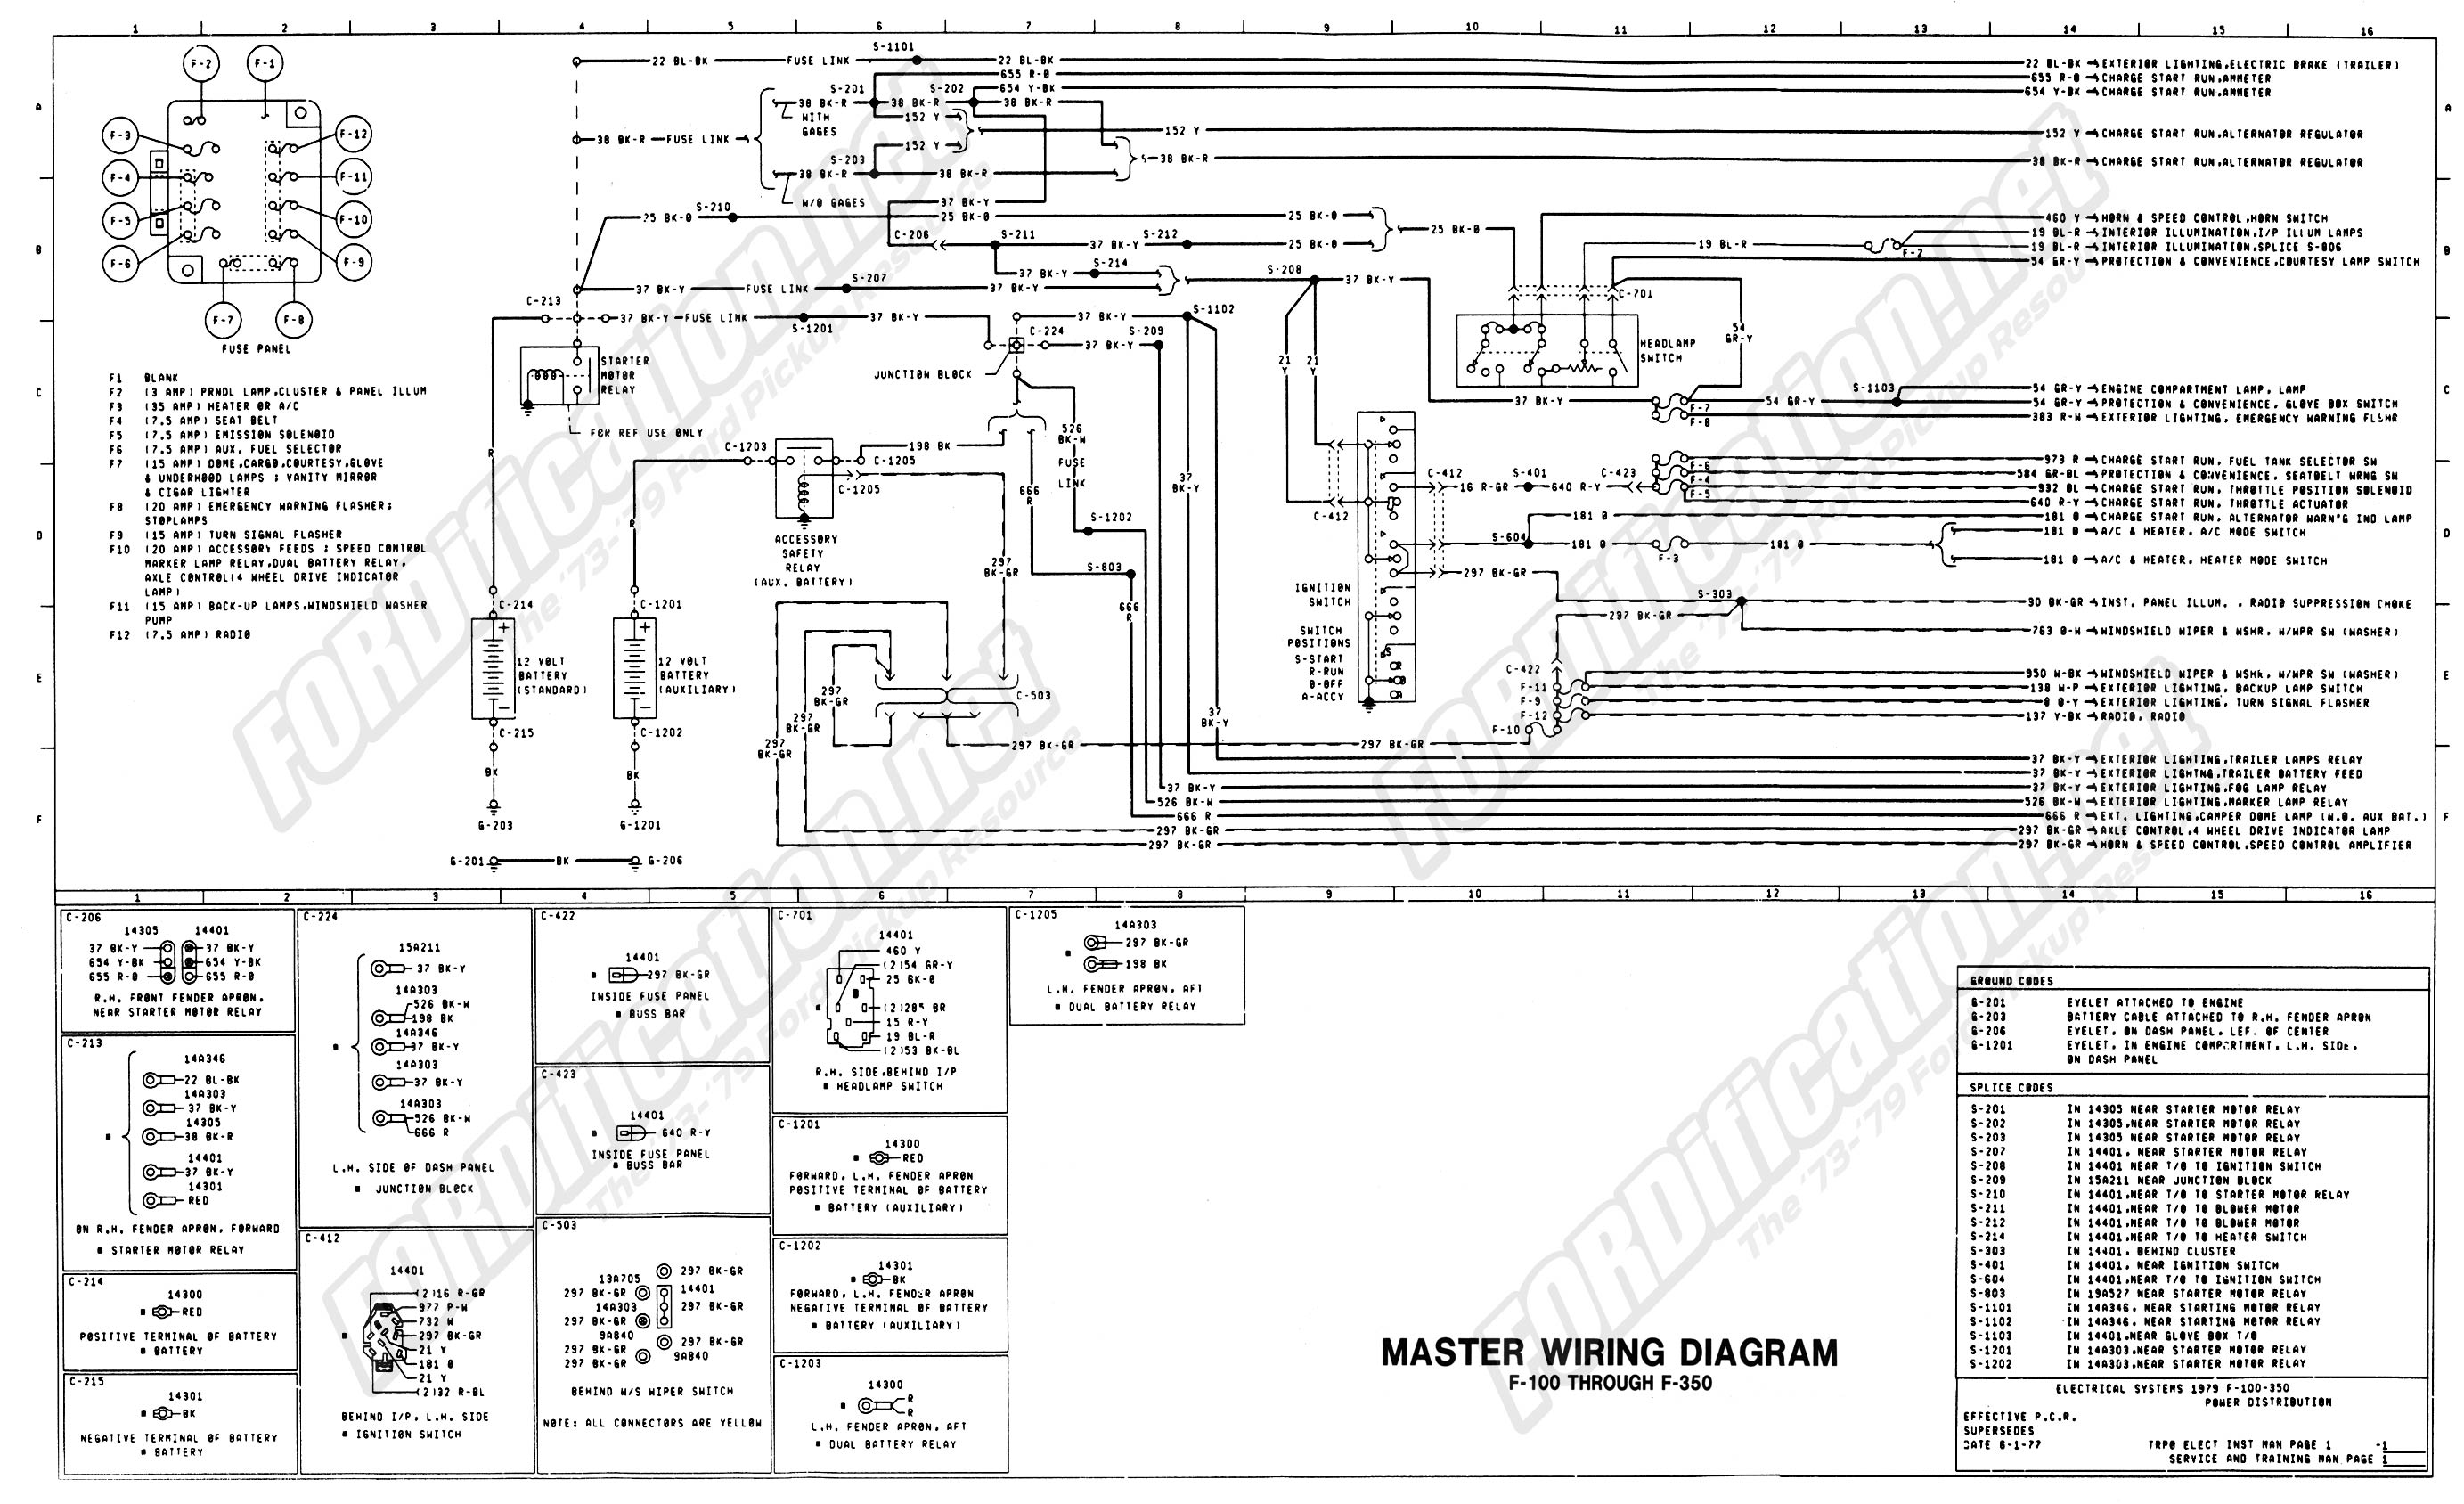 wiring_79master_1of9 1973 1979 ford truck wiring diagrams & schematics fordification net 1979 ford truck fuse box diagram at mifinder.co